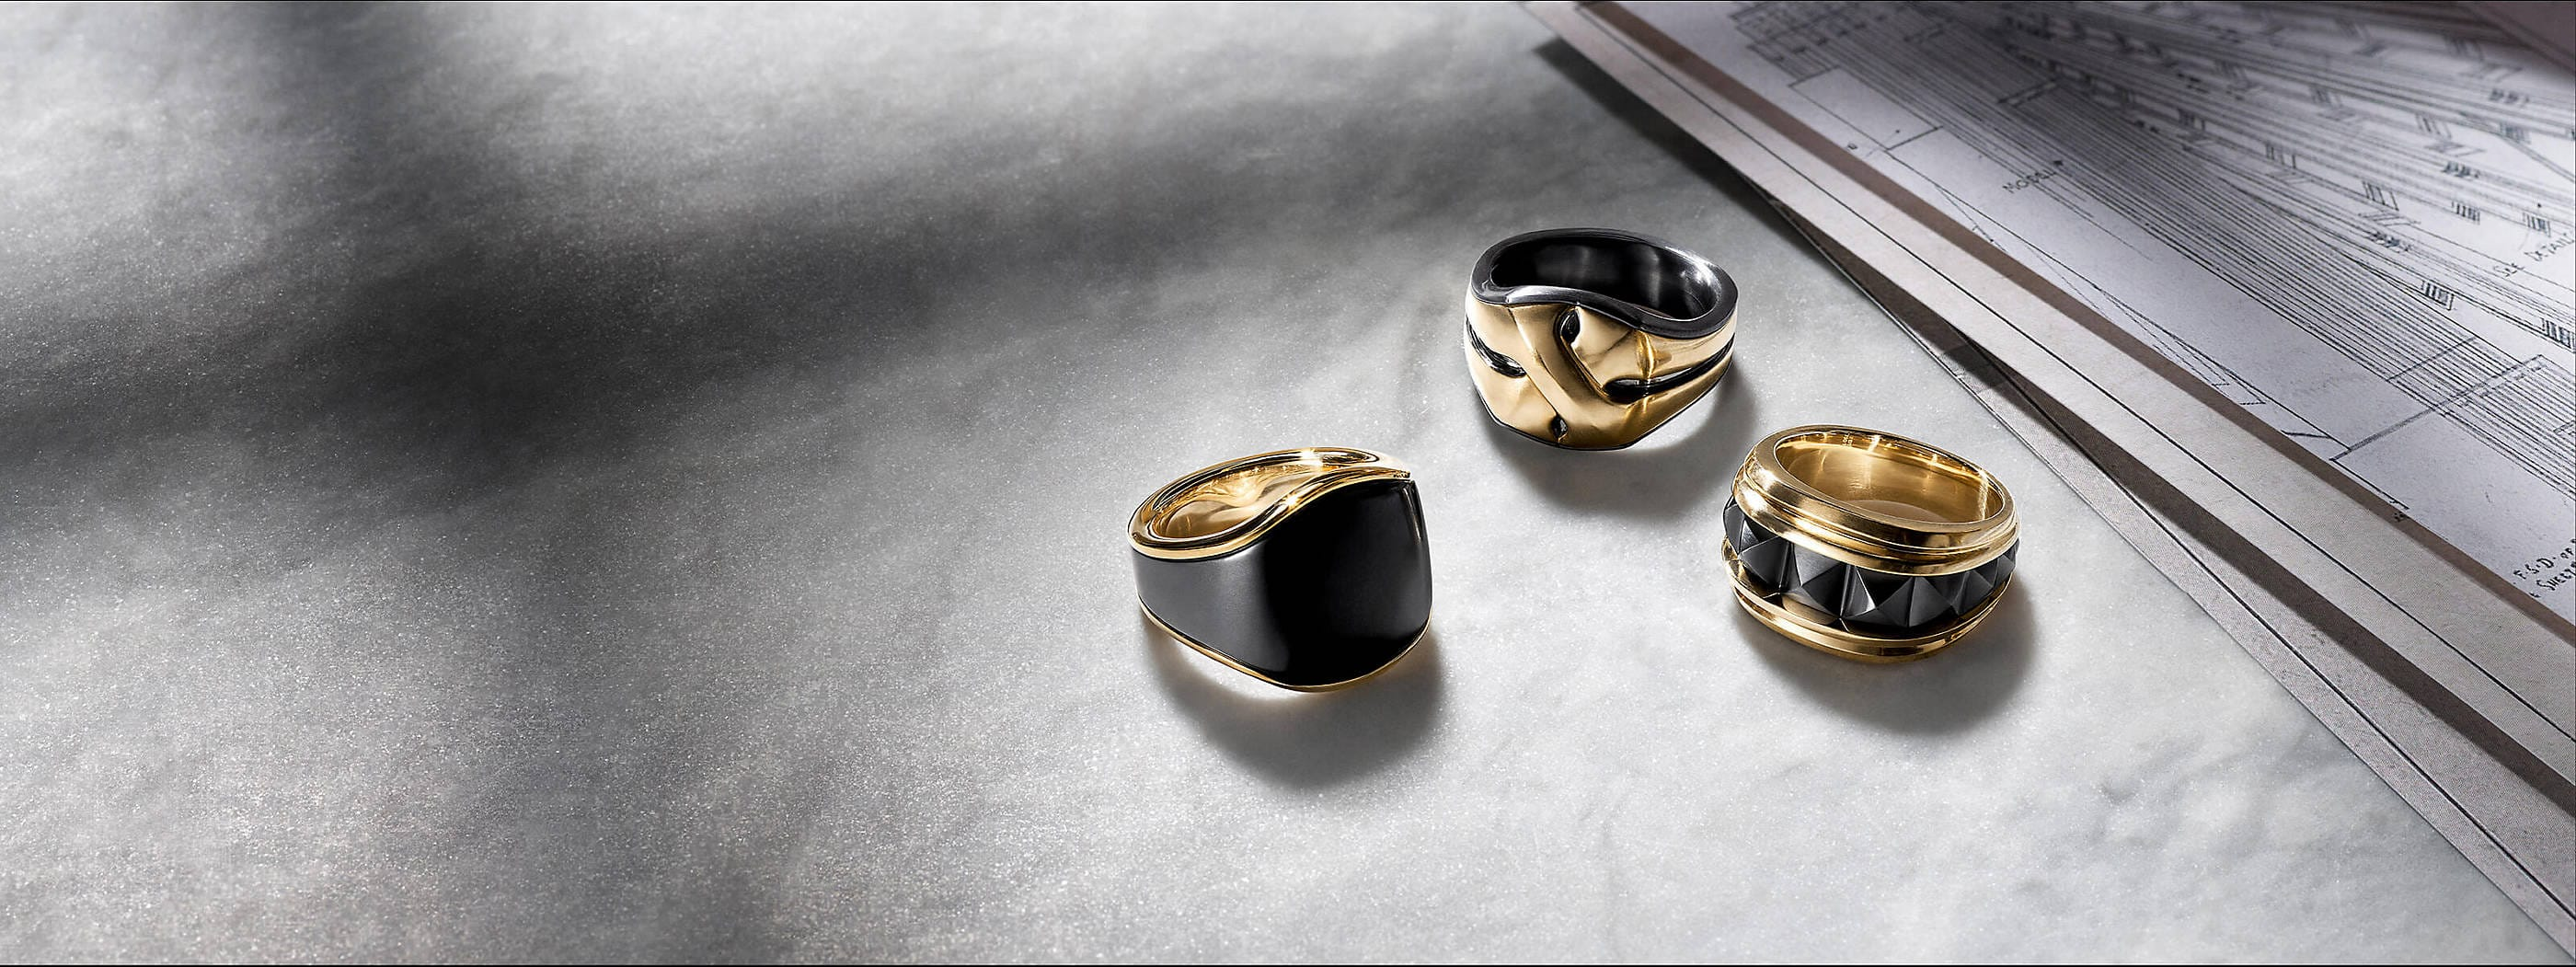 A  color photo shows three David Yurman men's rings from the Streamline, Armory and Pyramid collections on a grey marble surface next to architectural blueprints. The jewelry is crafted from 18K yellow gold with black titanium.